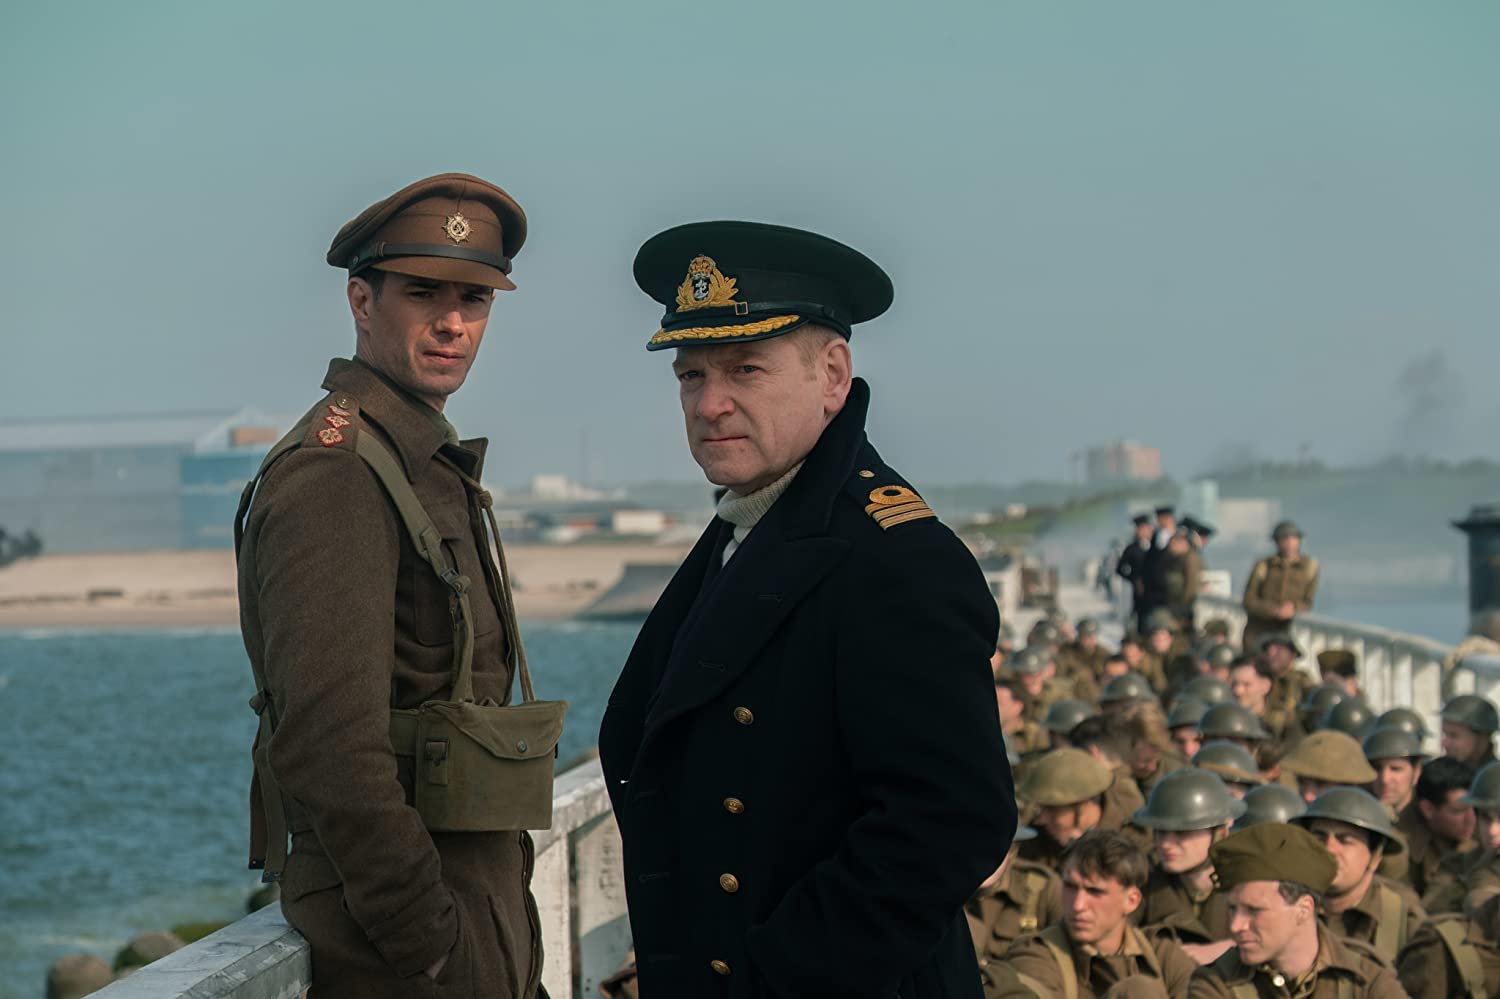 Kenneth Branagh and James D'Arcy in Dunkirk (2017)